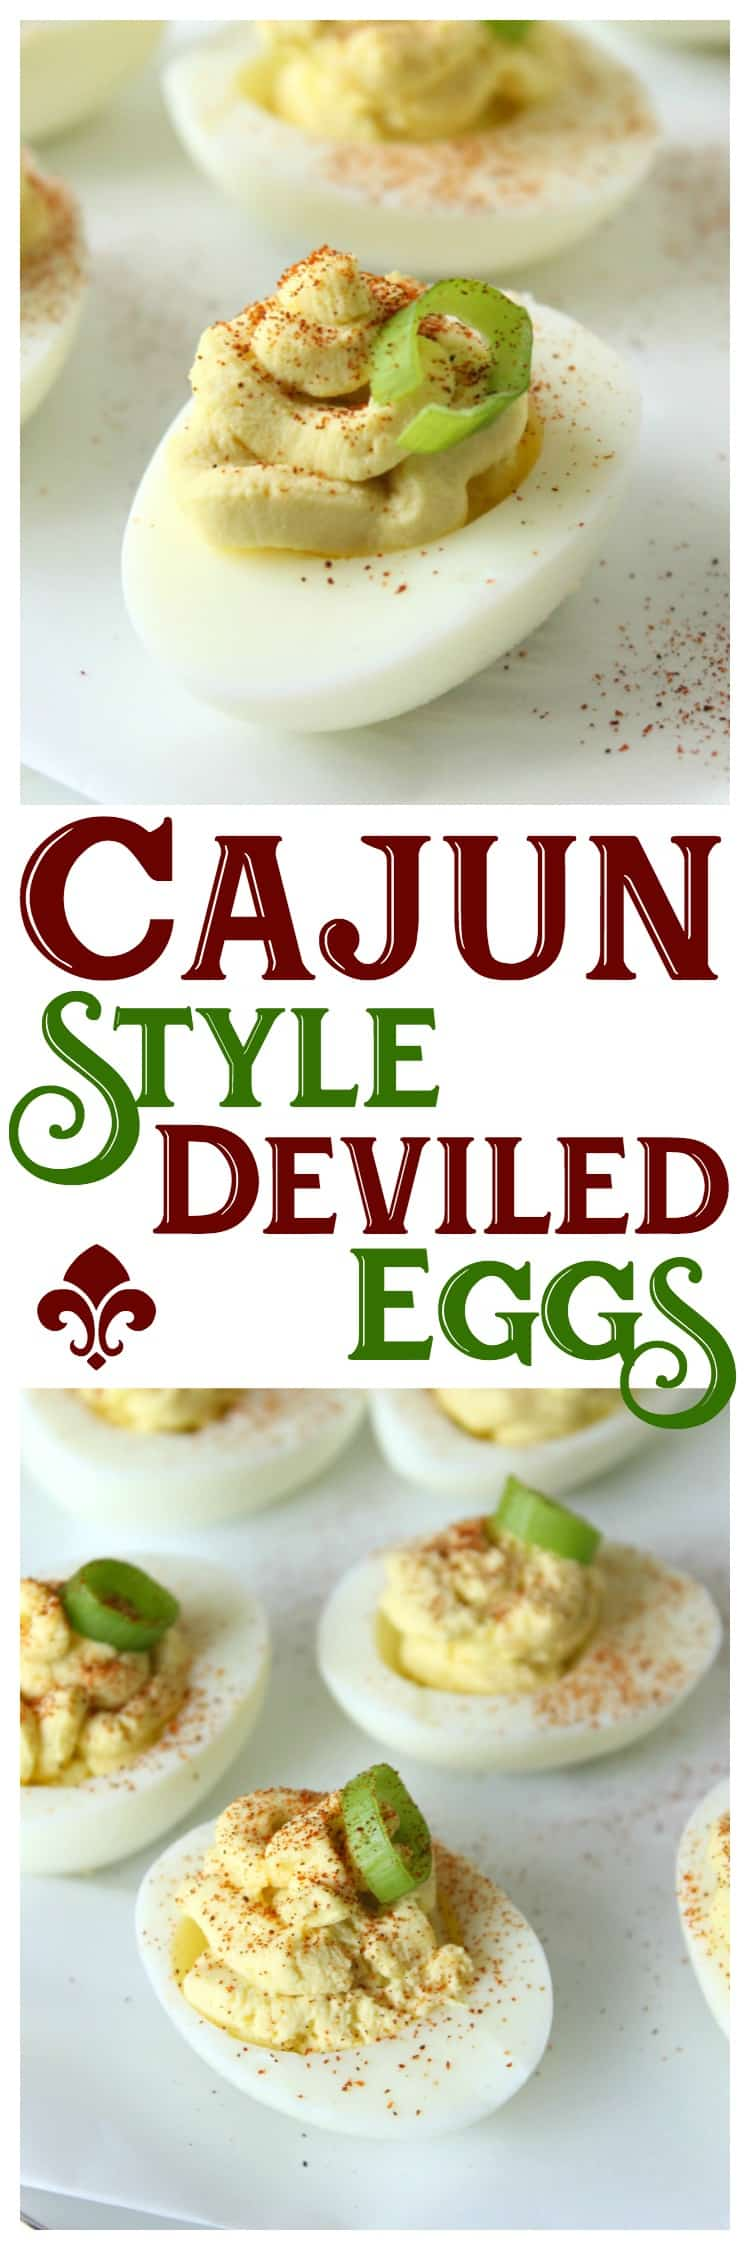 spicy cajun deviled eggs